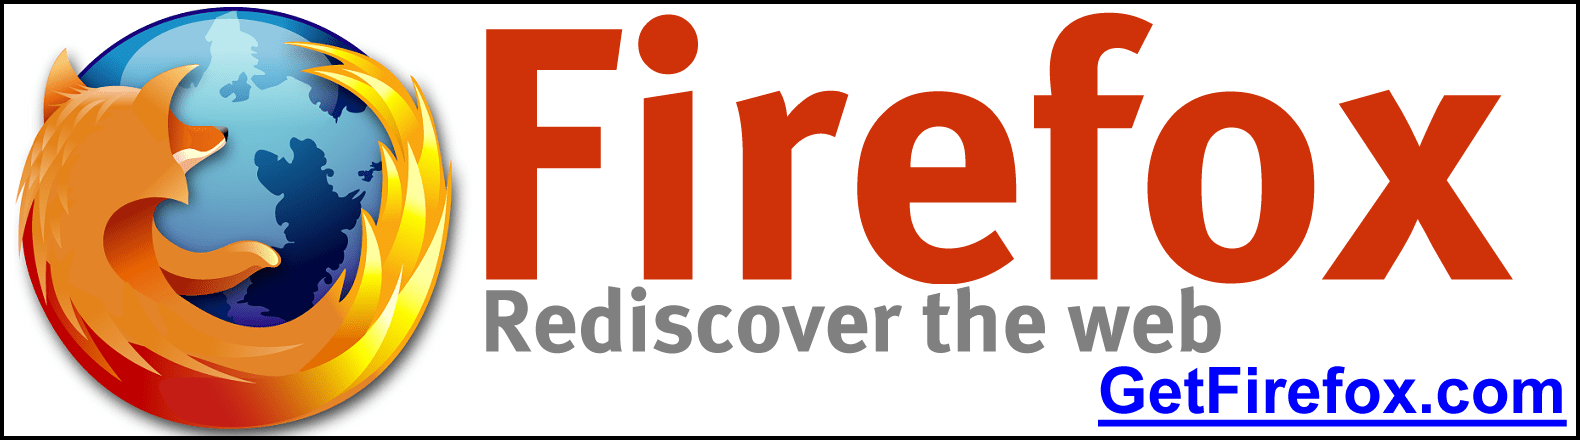 My Make Your Own Firefox Bumper Sticker How To